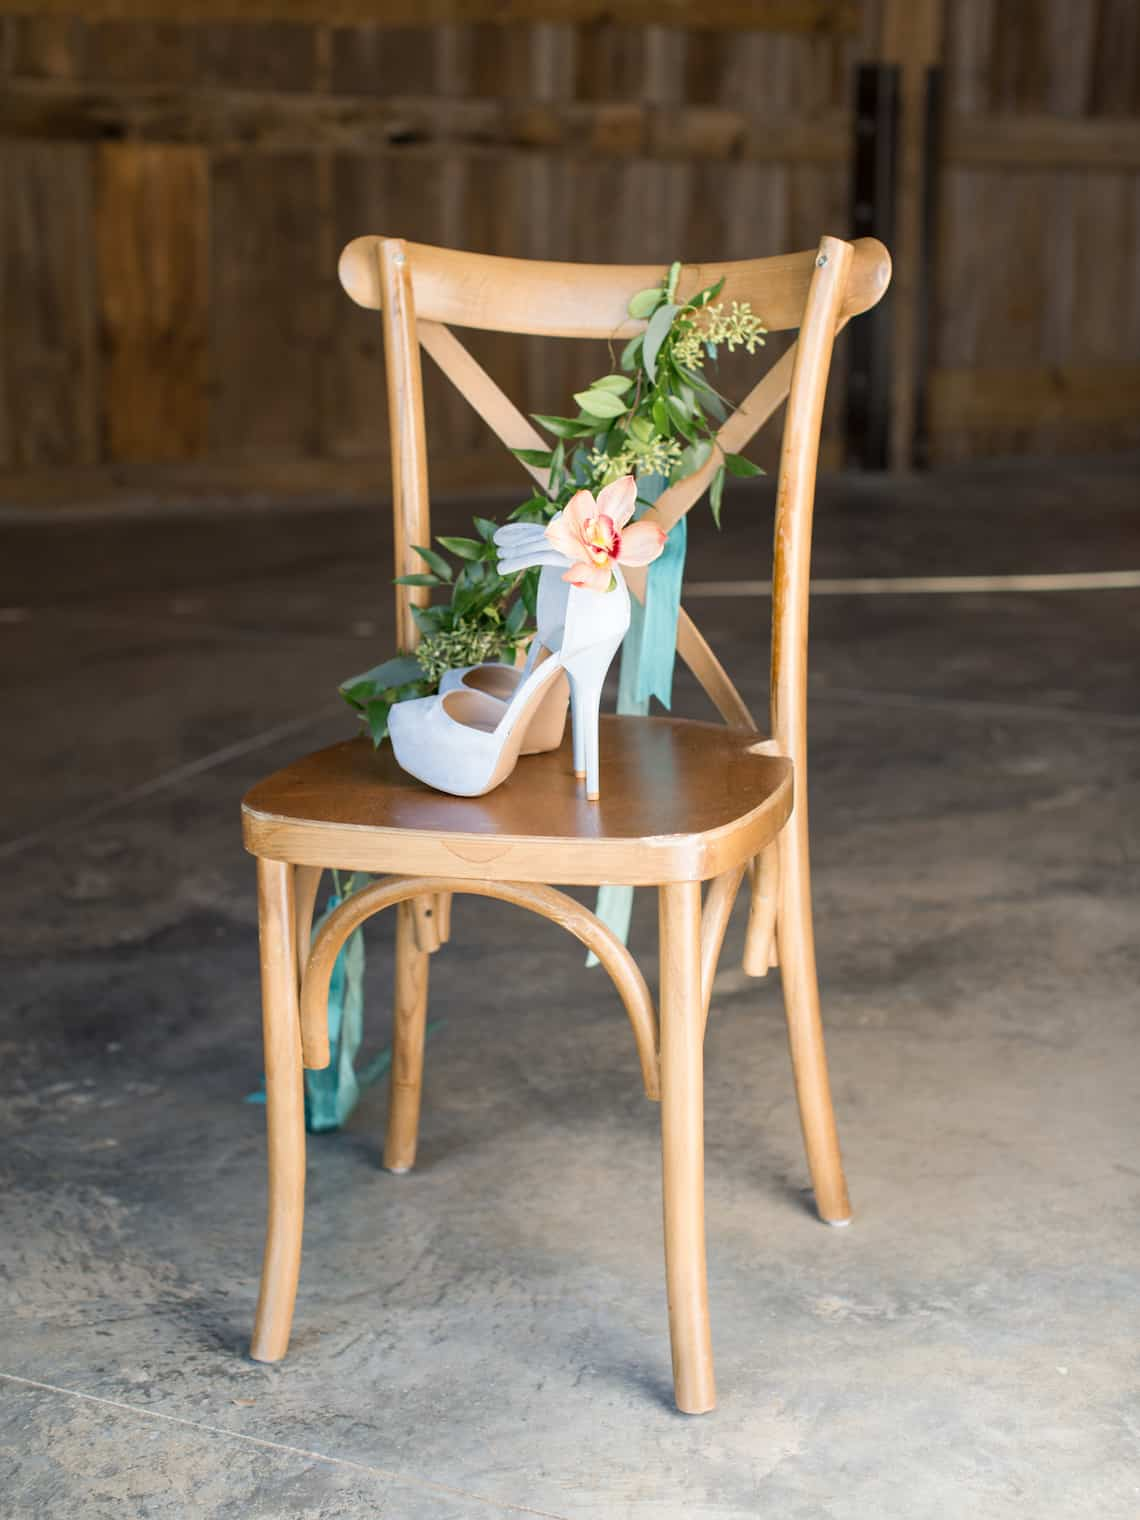 Light Blue Heels with Flower on the Ankle Sitting on a Chair